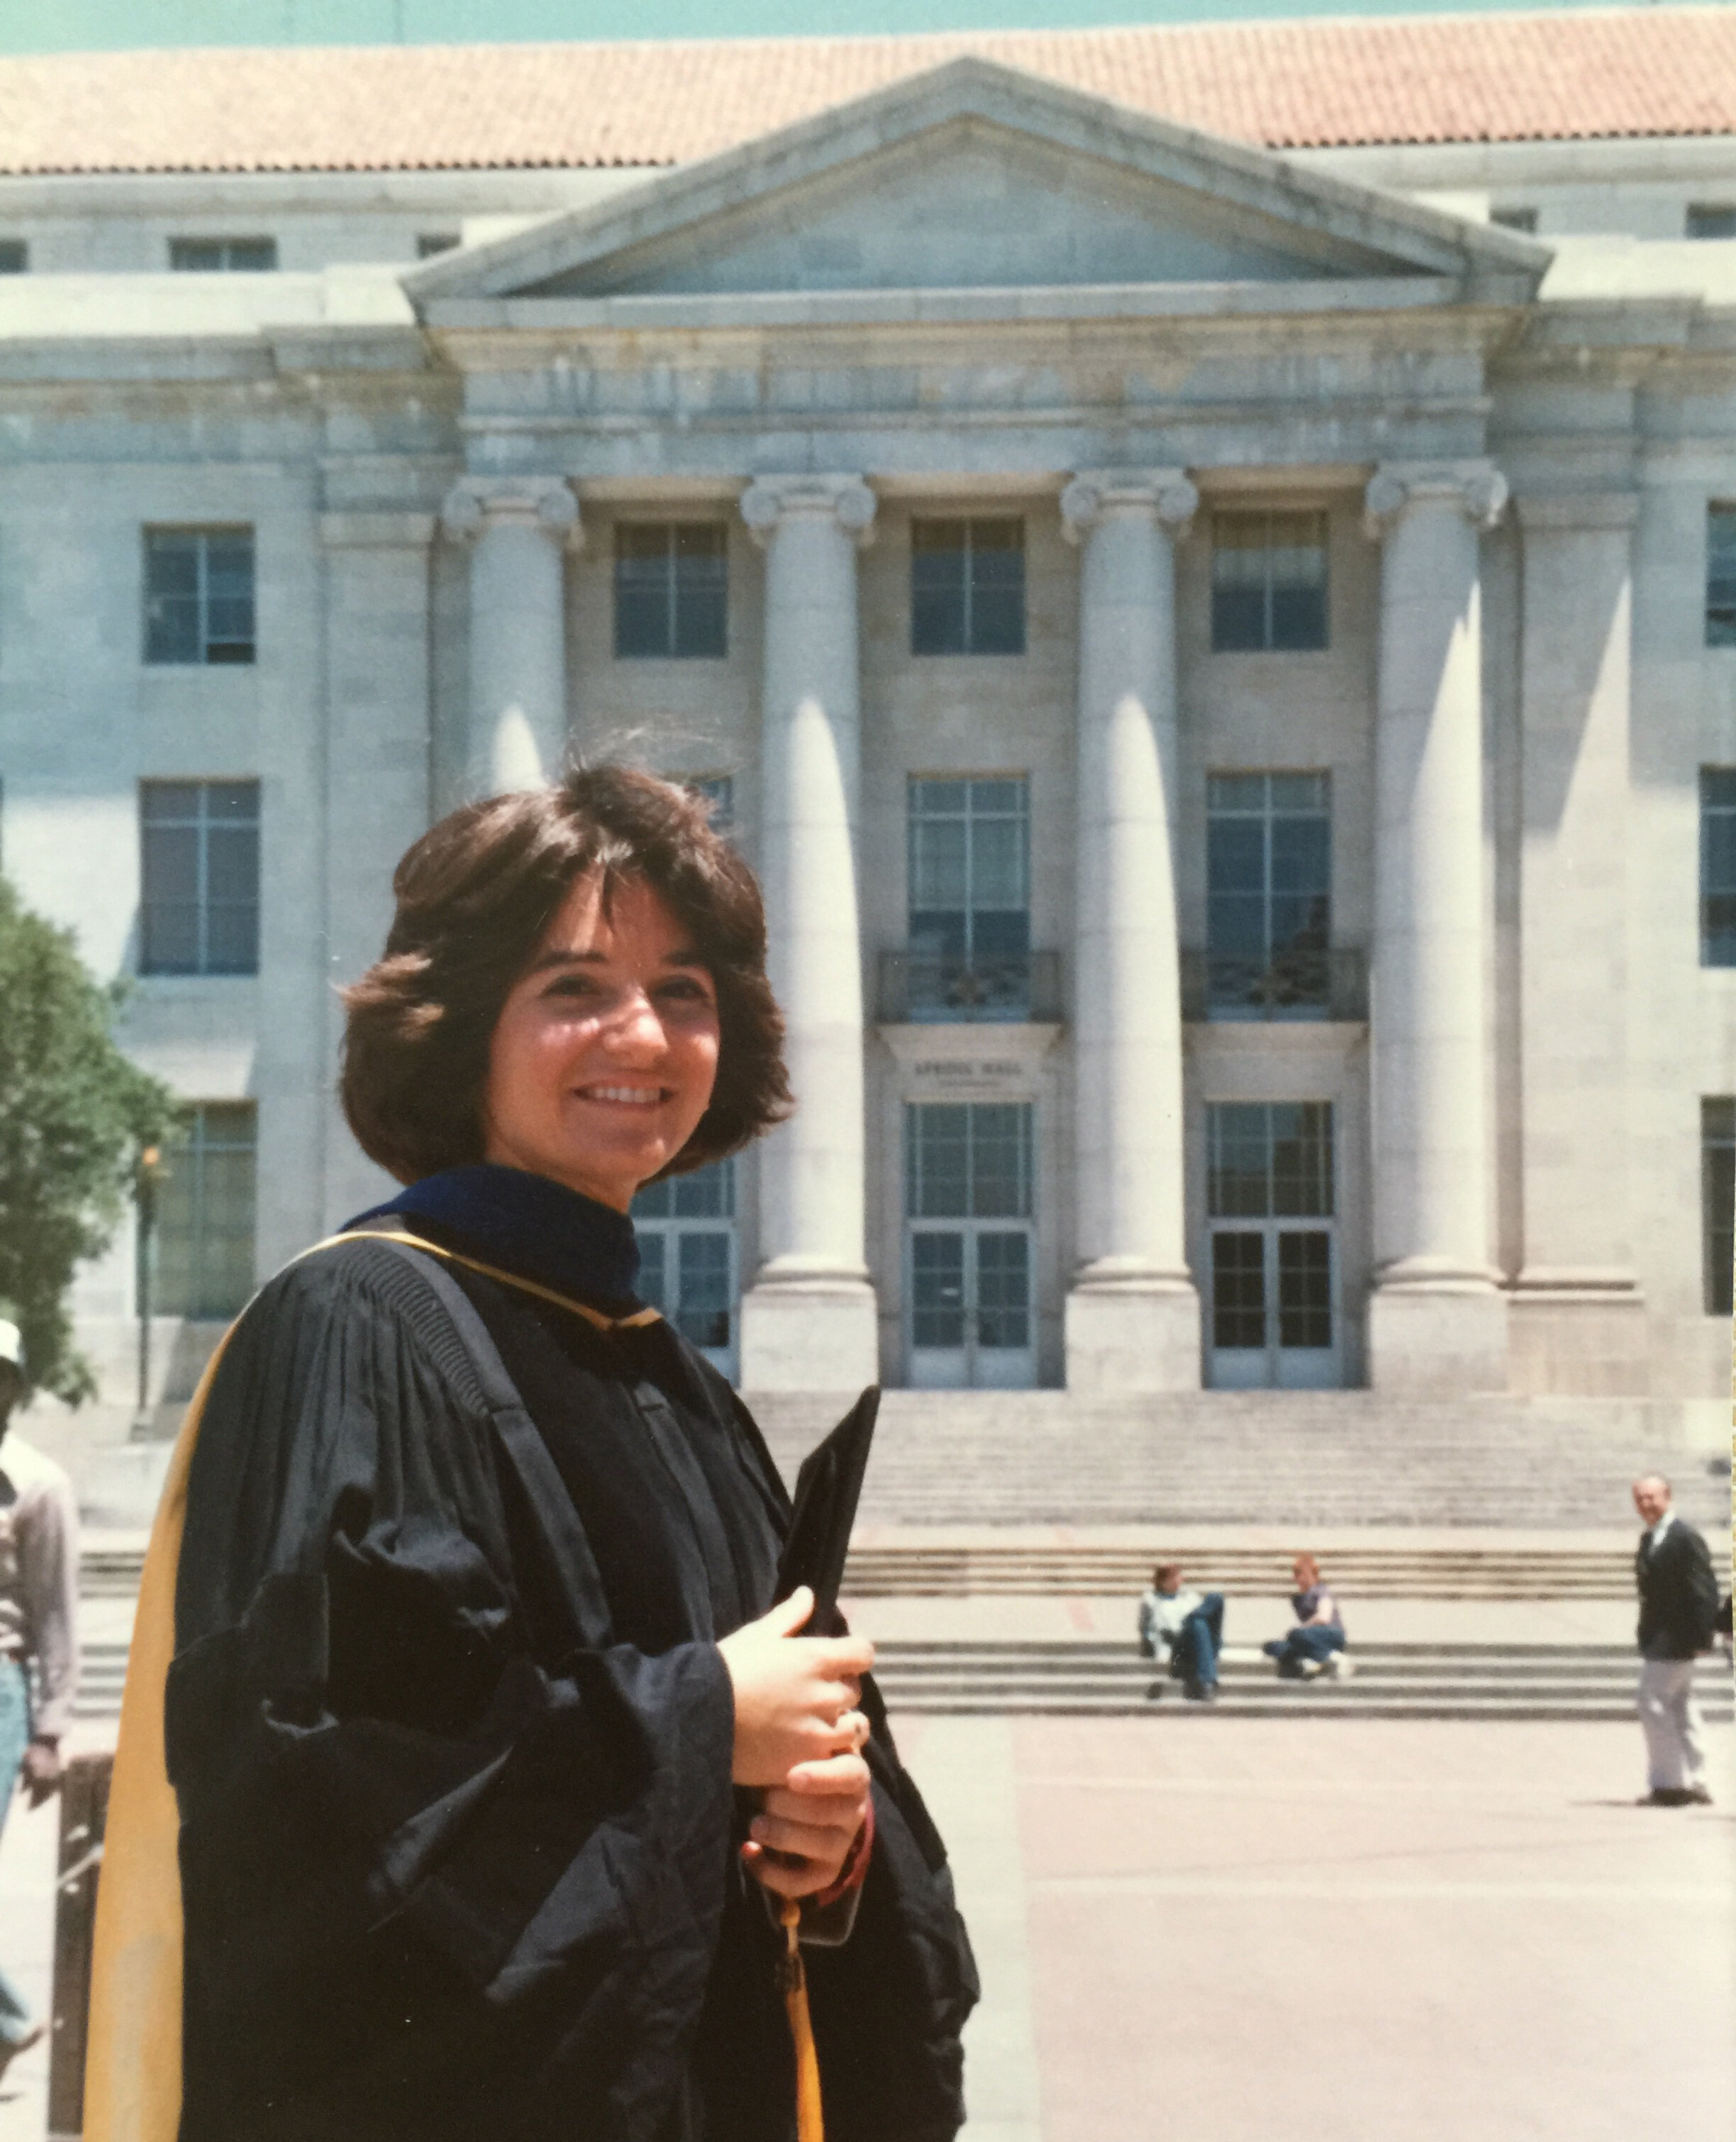 Kathryn Anthony's 1981 Ph.D. graduation at the University of California at Berkeley.